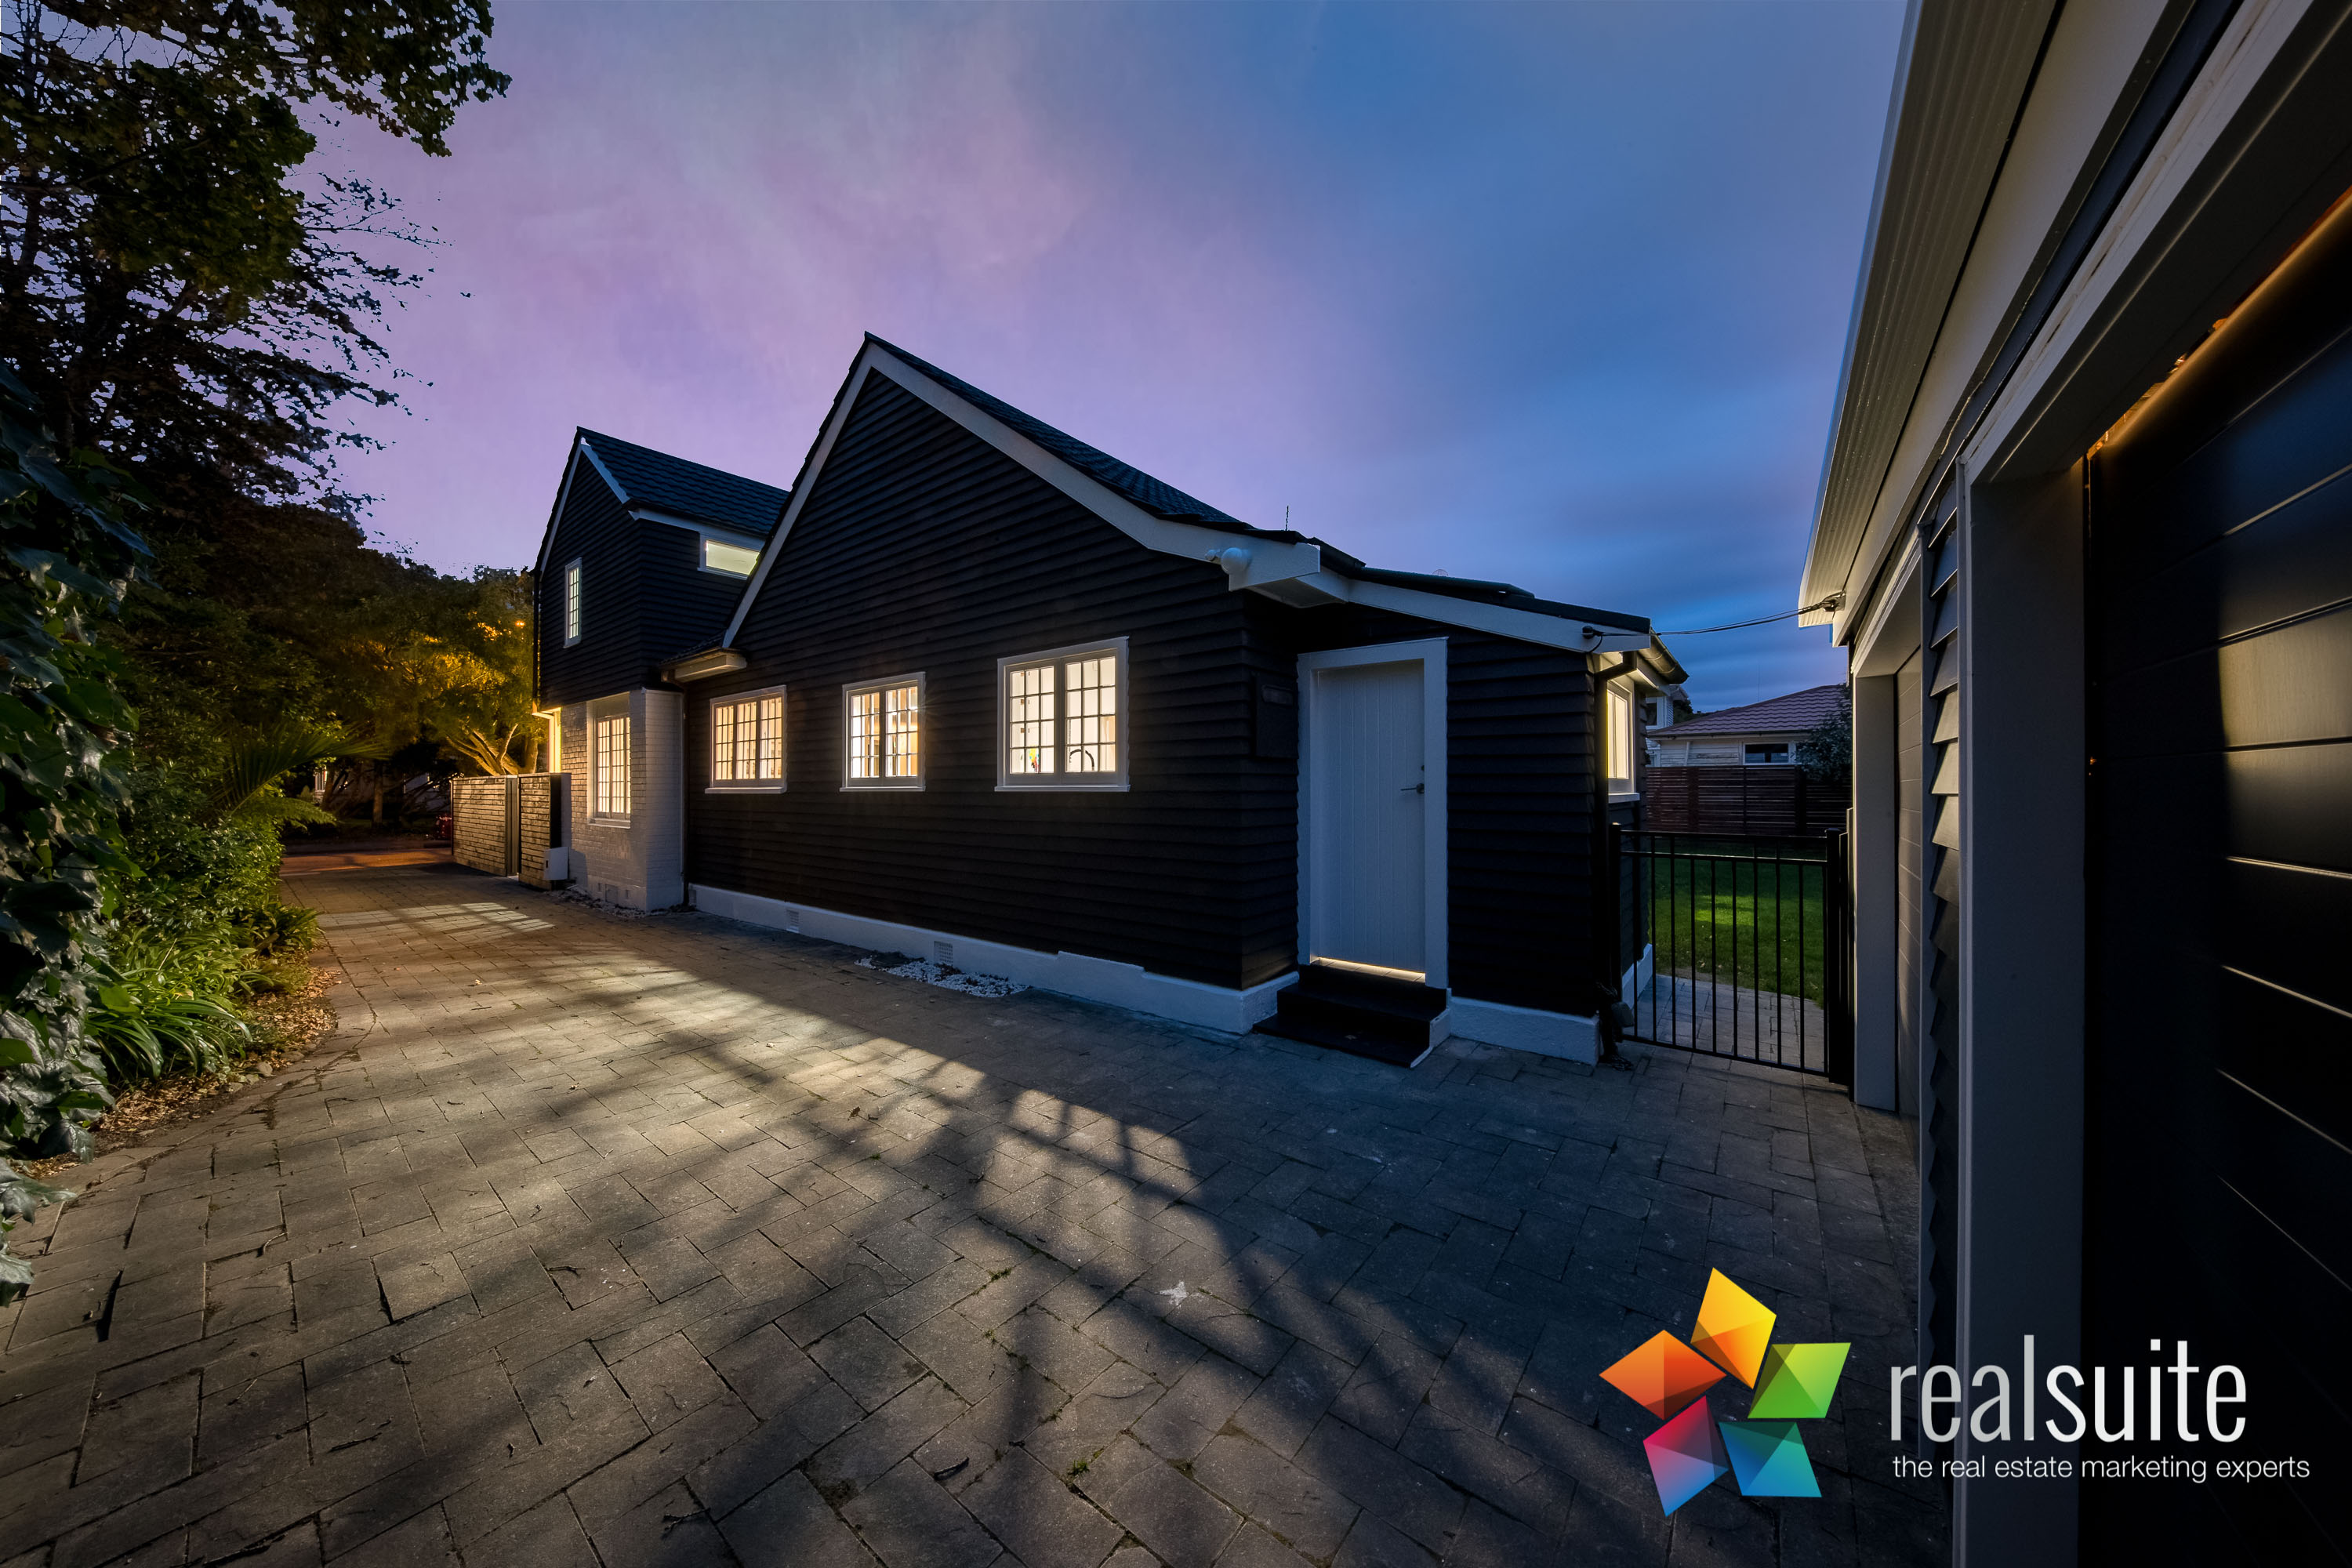 5 Troon Cres Twilight, Boulcott, Lower Hutt 4984